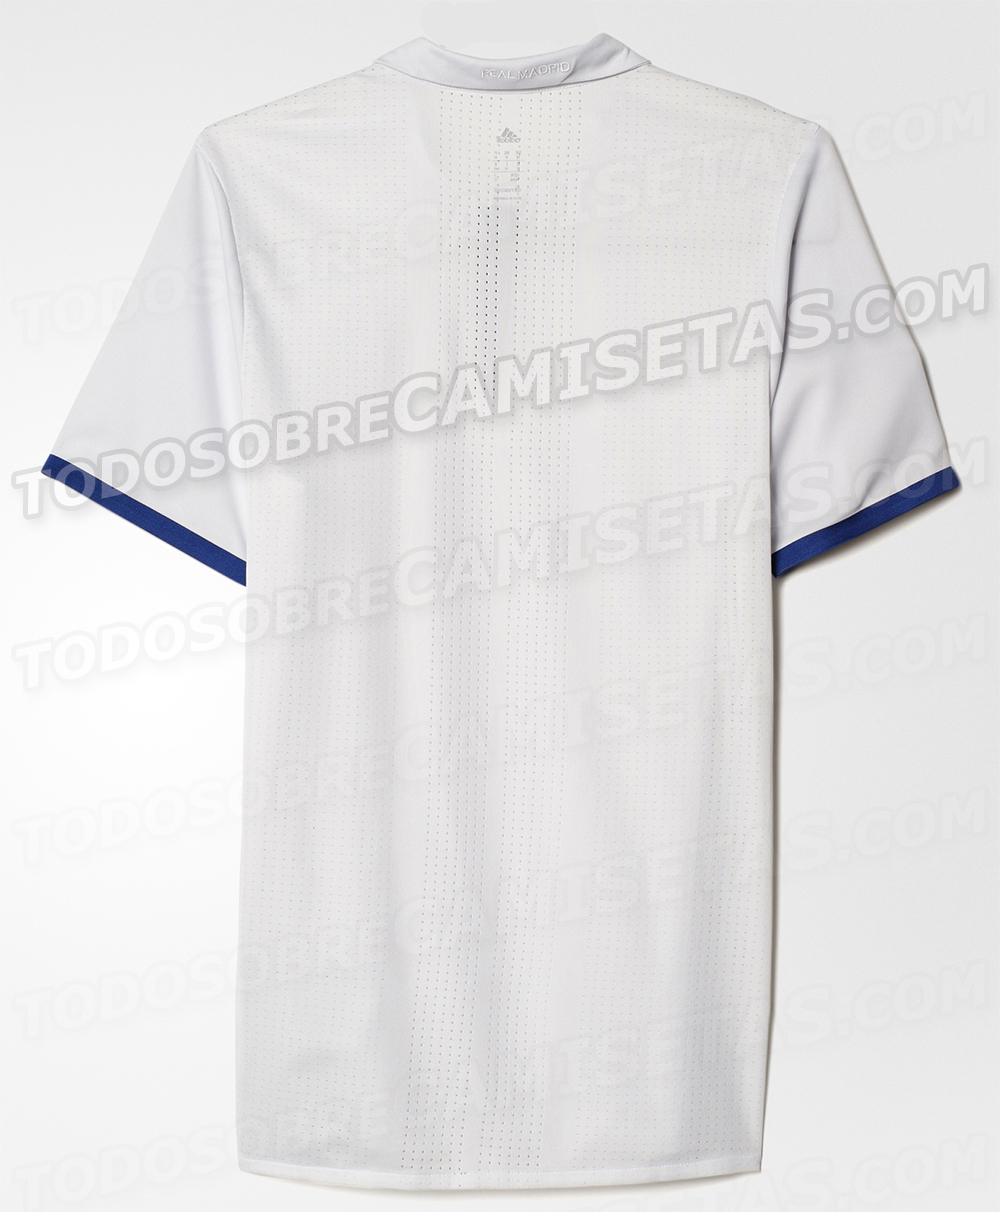 Real-Madrid-16-17-adidas-new-home-kit-leaked-3.jpg